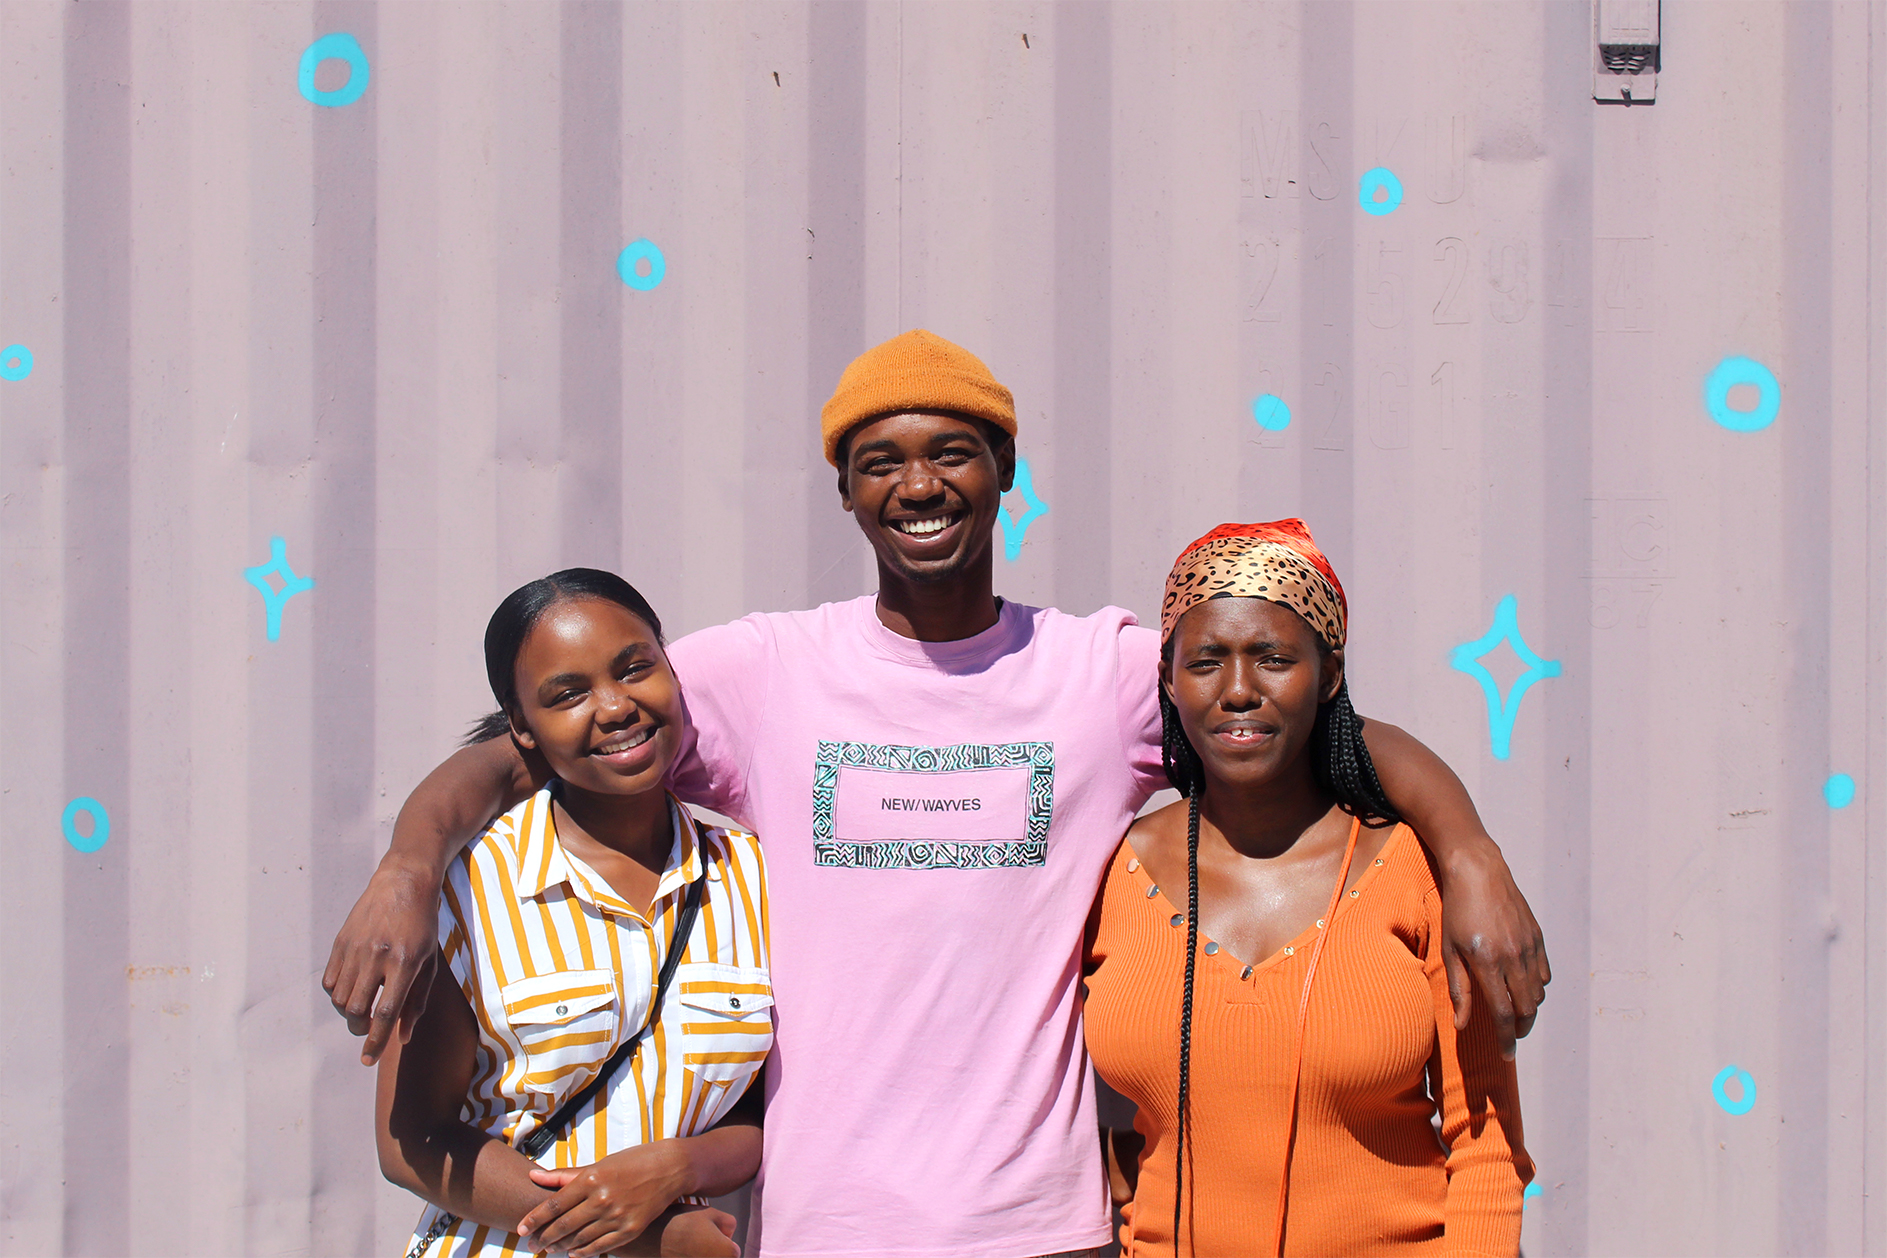 Three students holding each other in Cape Town South Africa